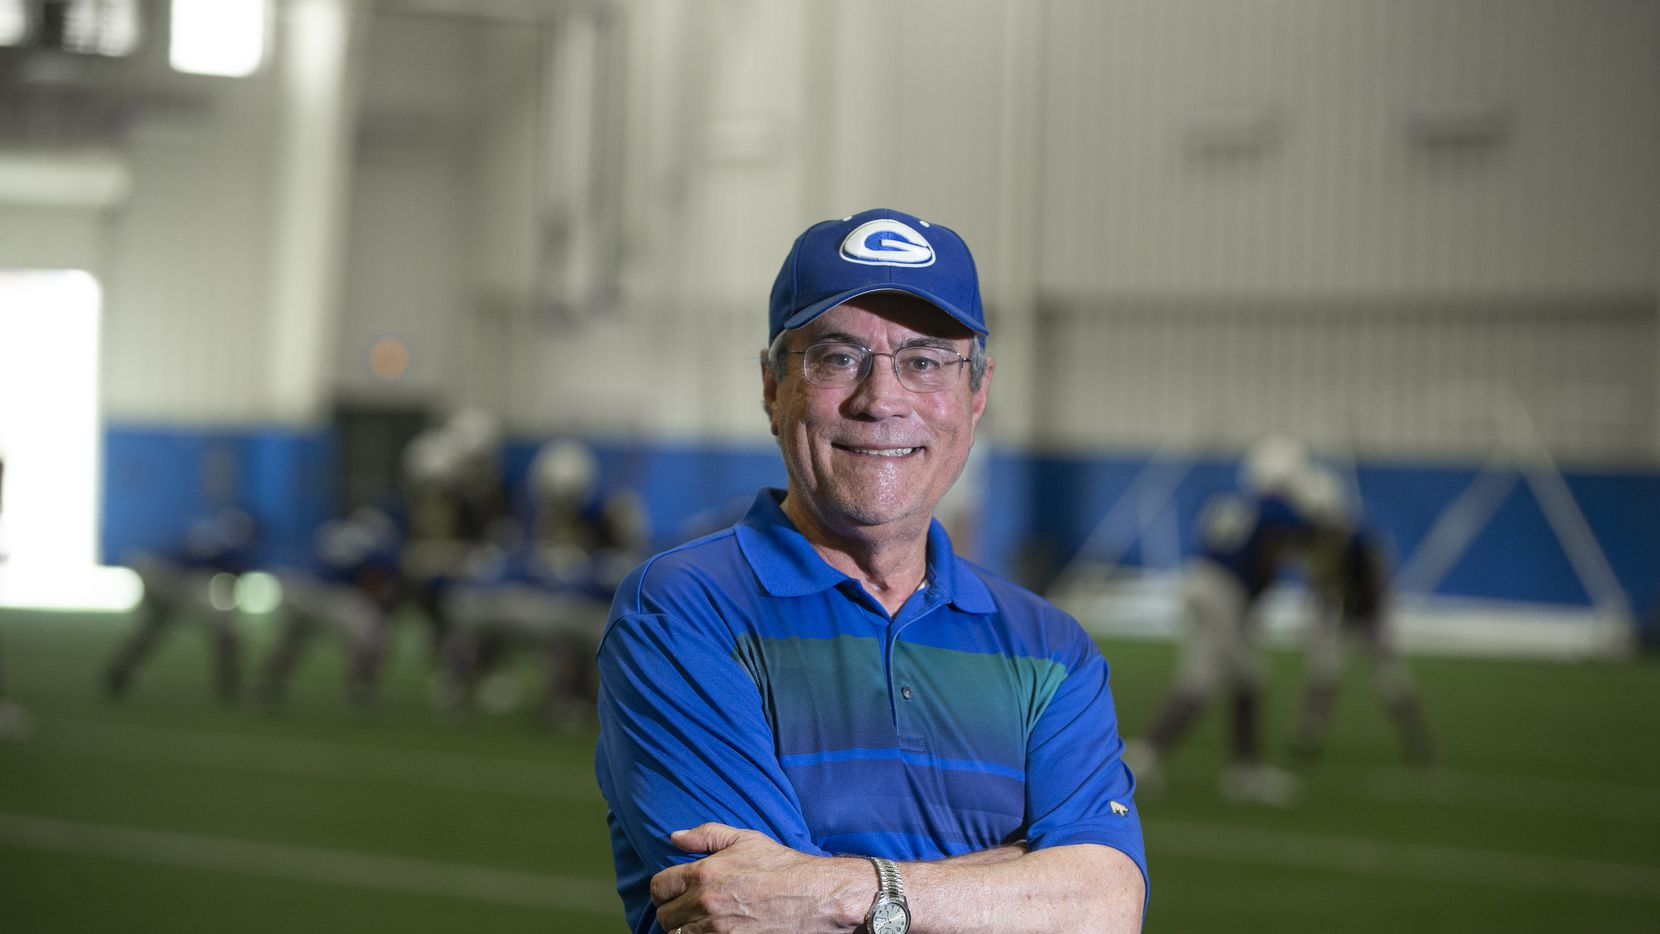 Former Grand Prairie ISD executive   director of athletics Gary Bartel, poses for a photo at Grand Prairie High School's indoor practice facility, Wednesday, August 11, 2021. Bartel was on a ventilator for 103 days battling COVID-19.